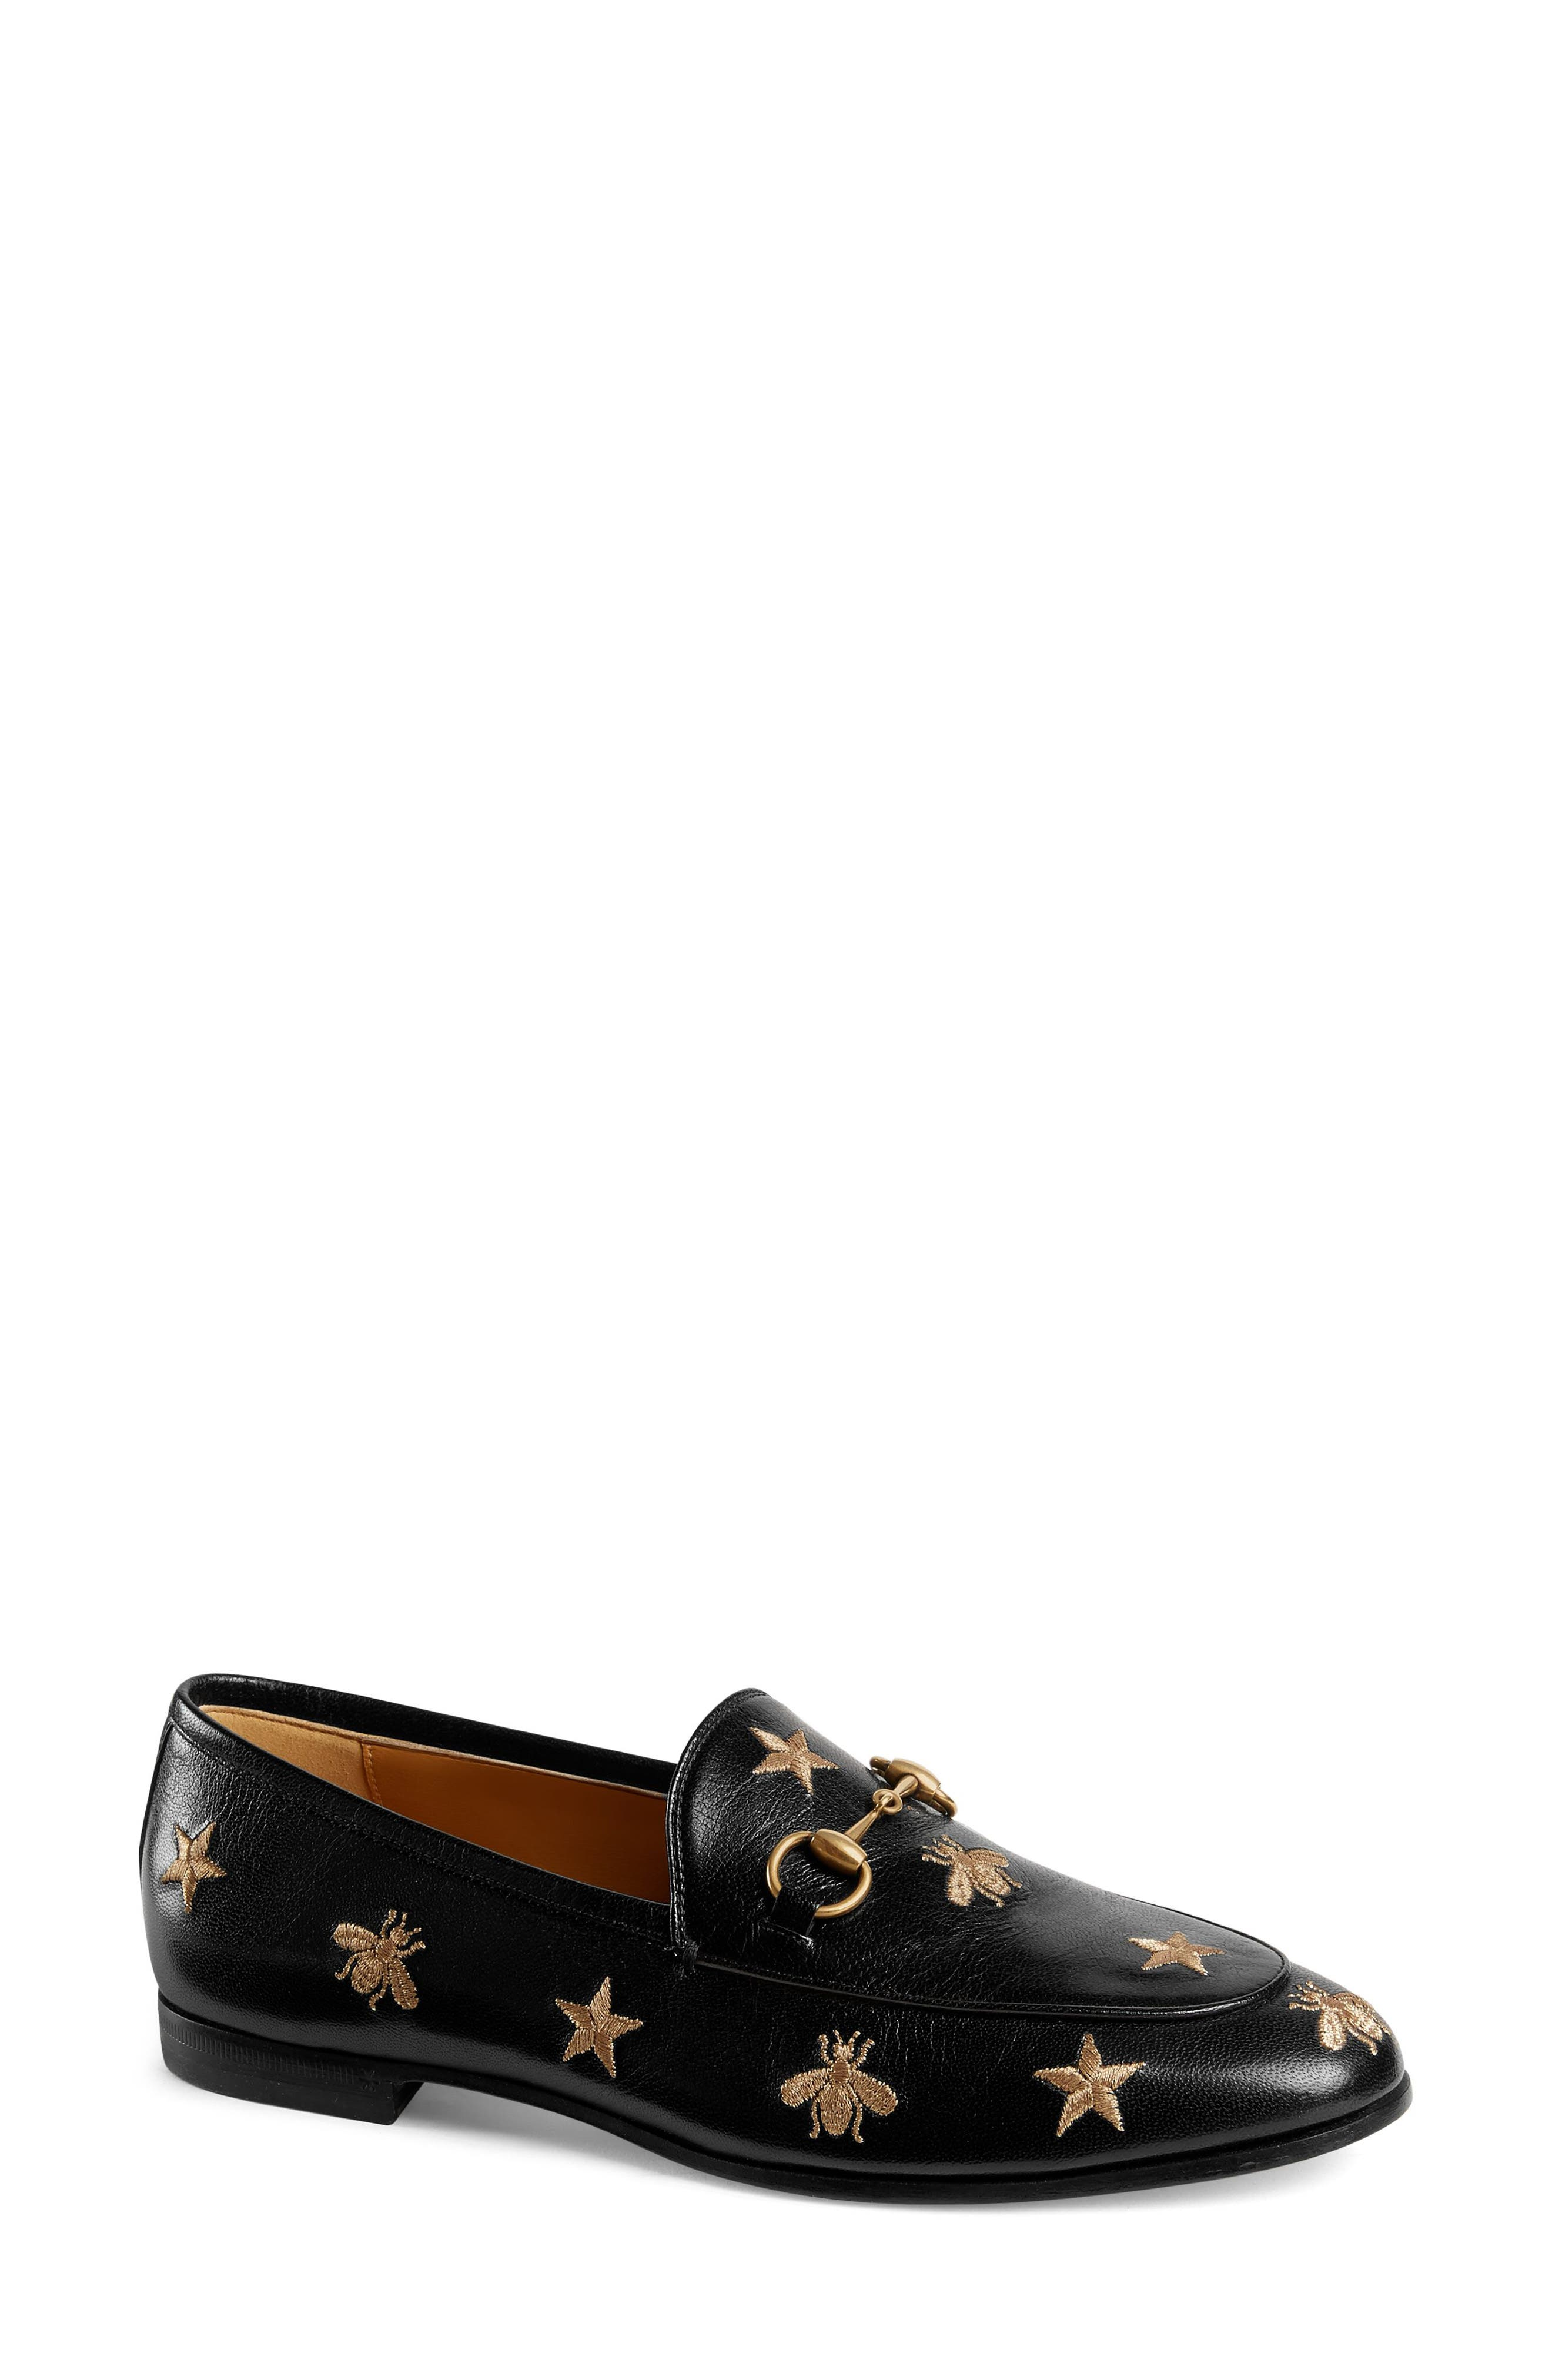 Gucci Jordaan Embroidered Bee Loafer - Black